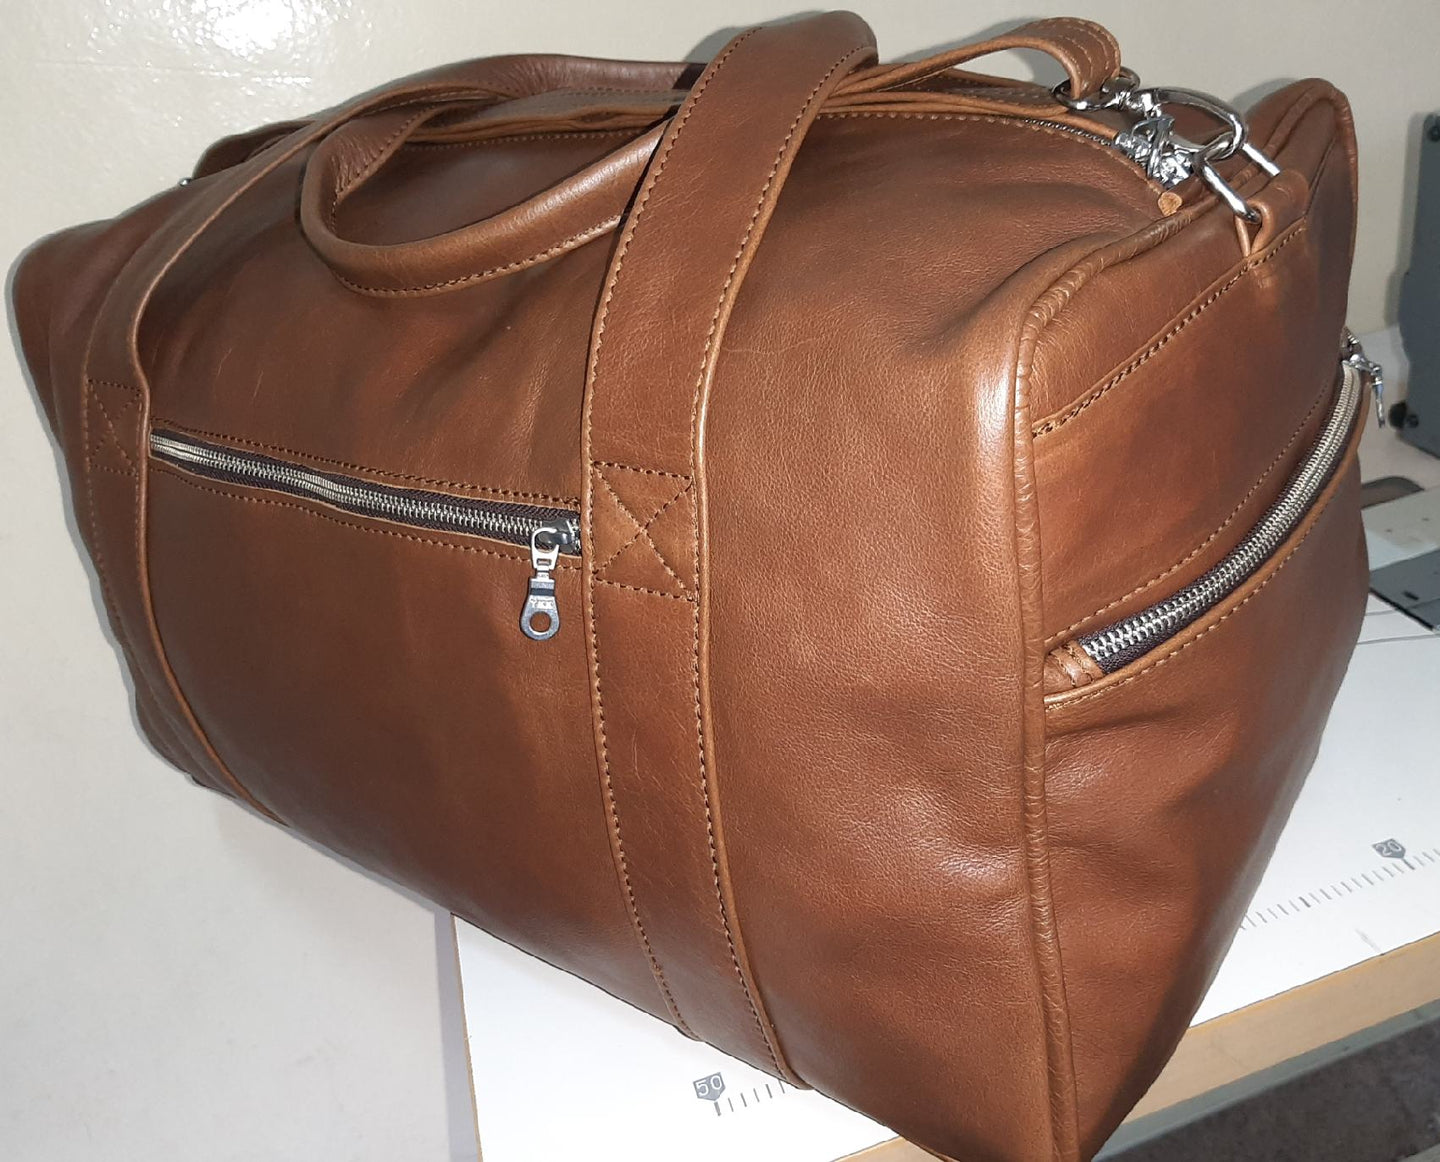 Masai leather travel bag XL